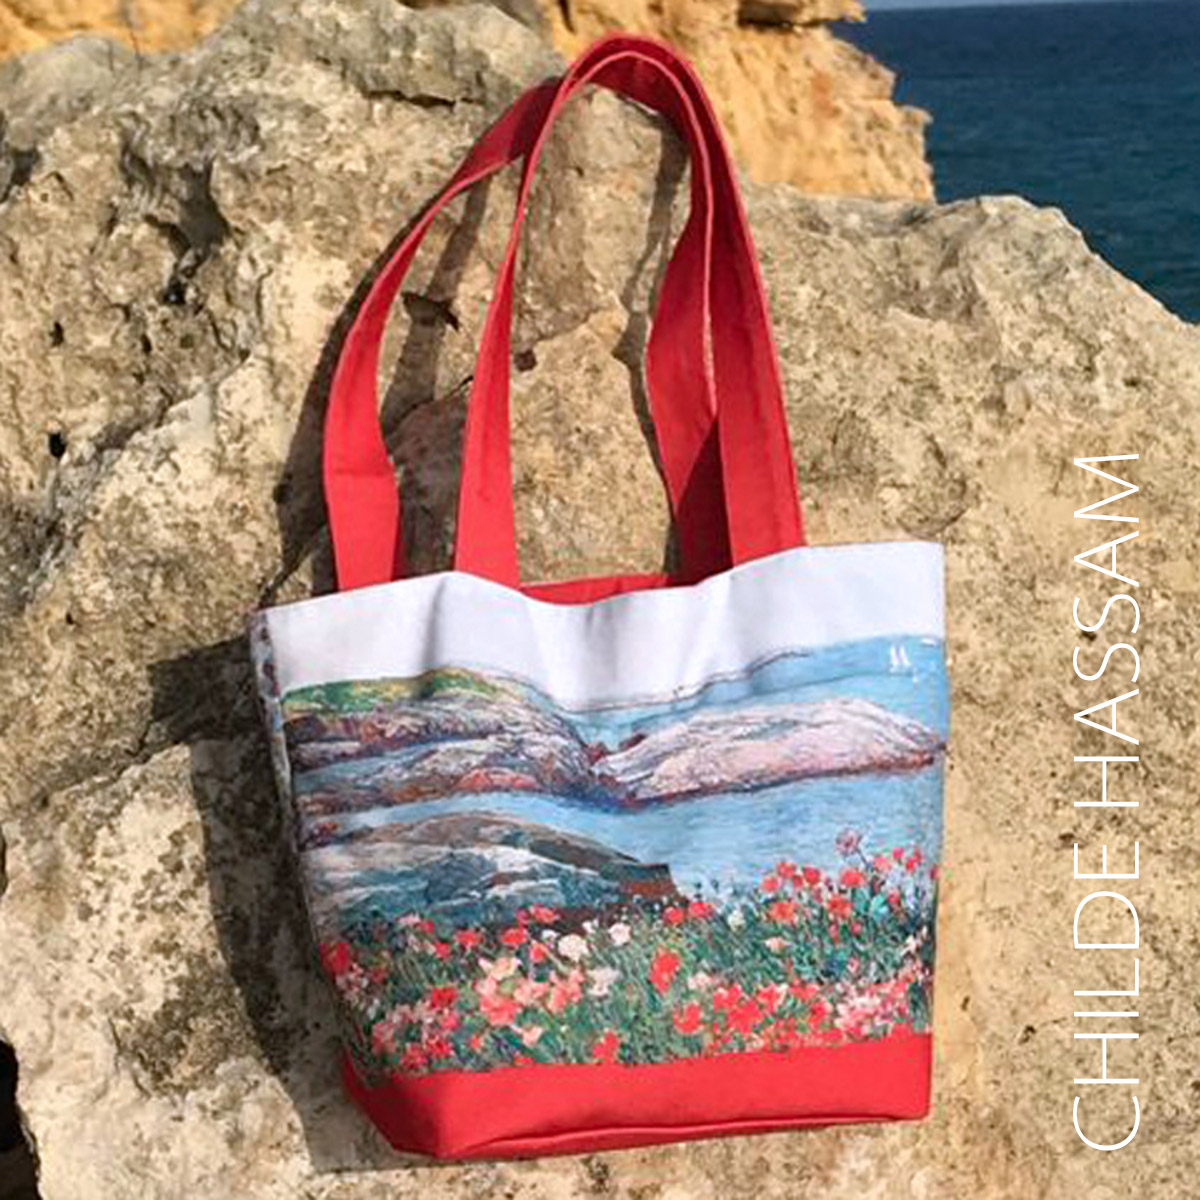 Chile hassam Isle of Shoals Tote bag